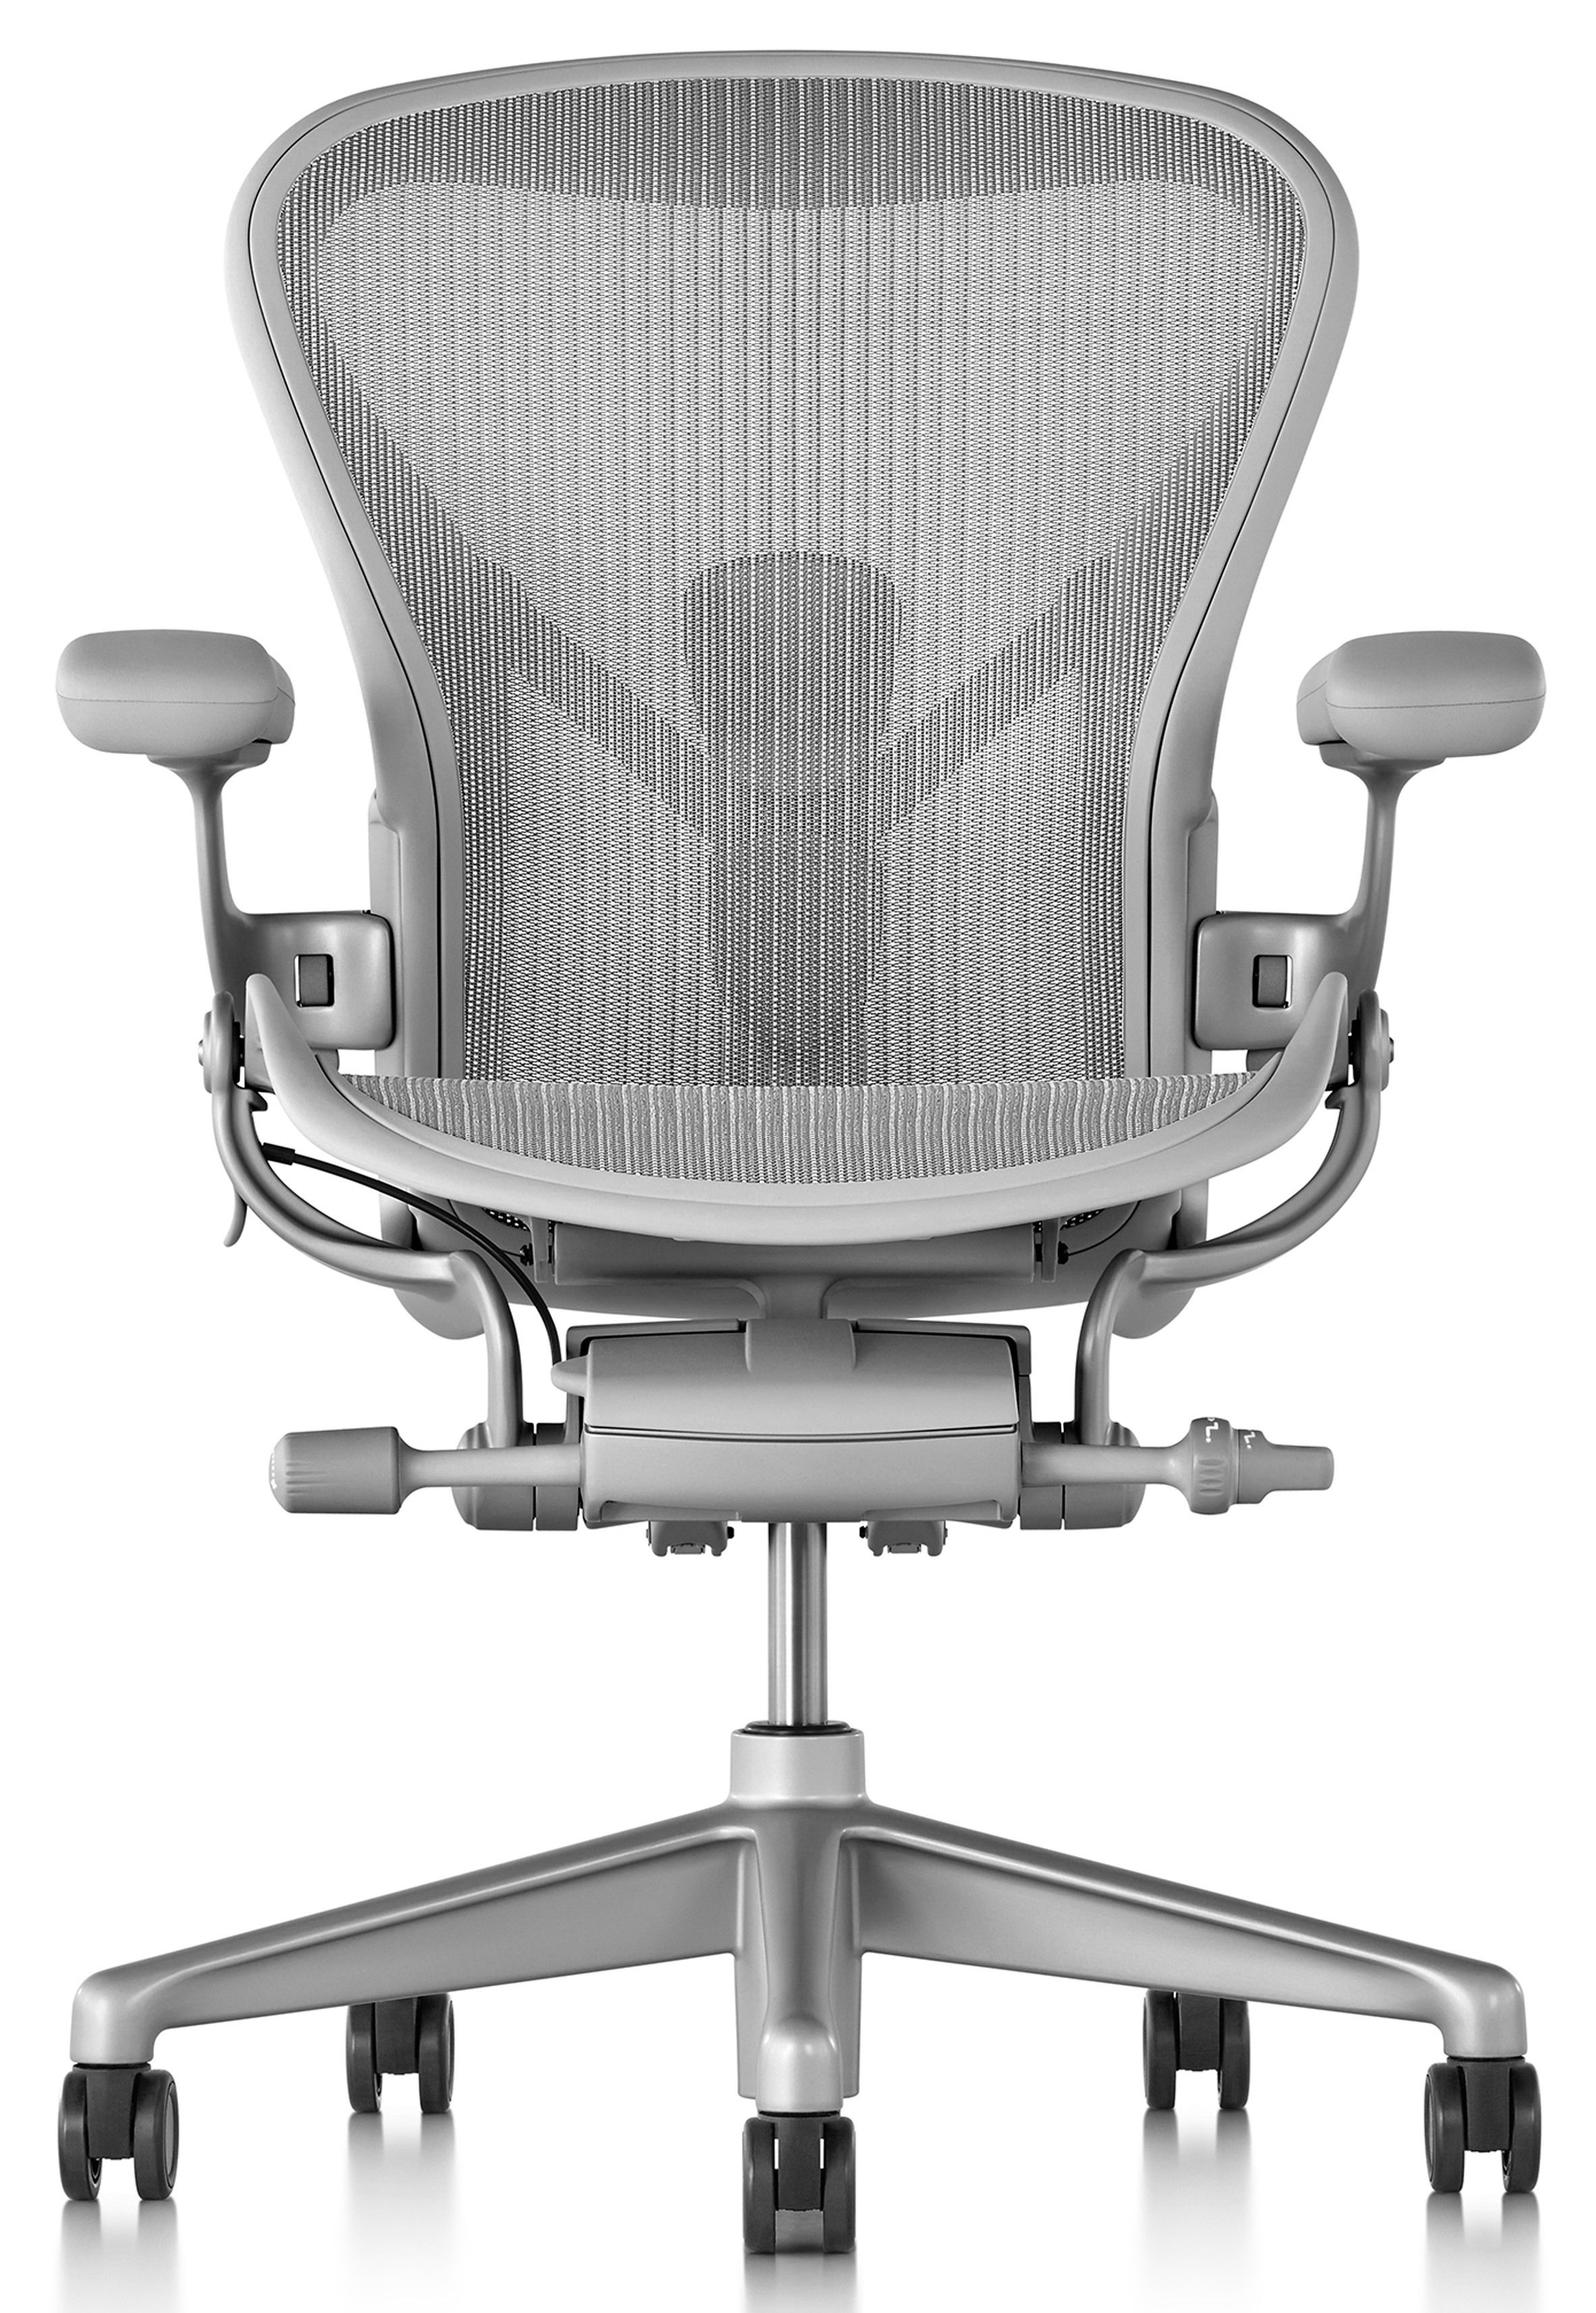 Herman Miller updates iconic Aeron office chair | Office ...